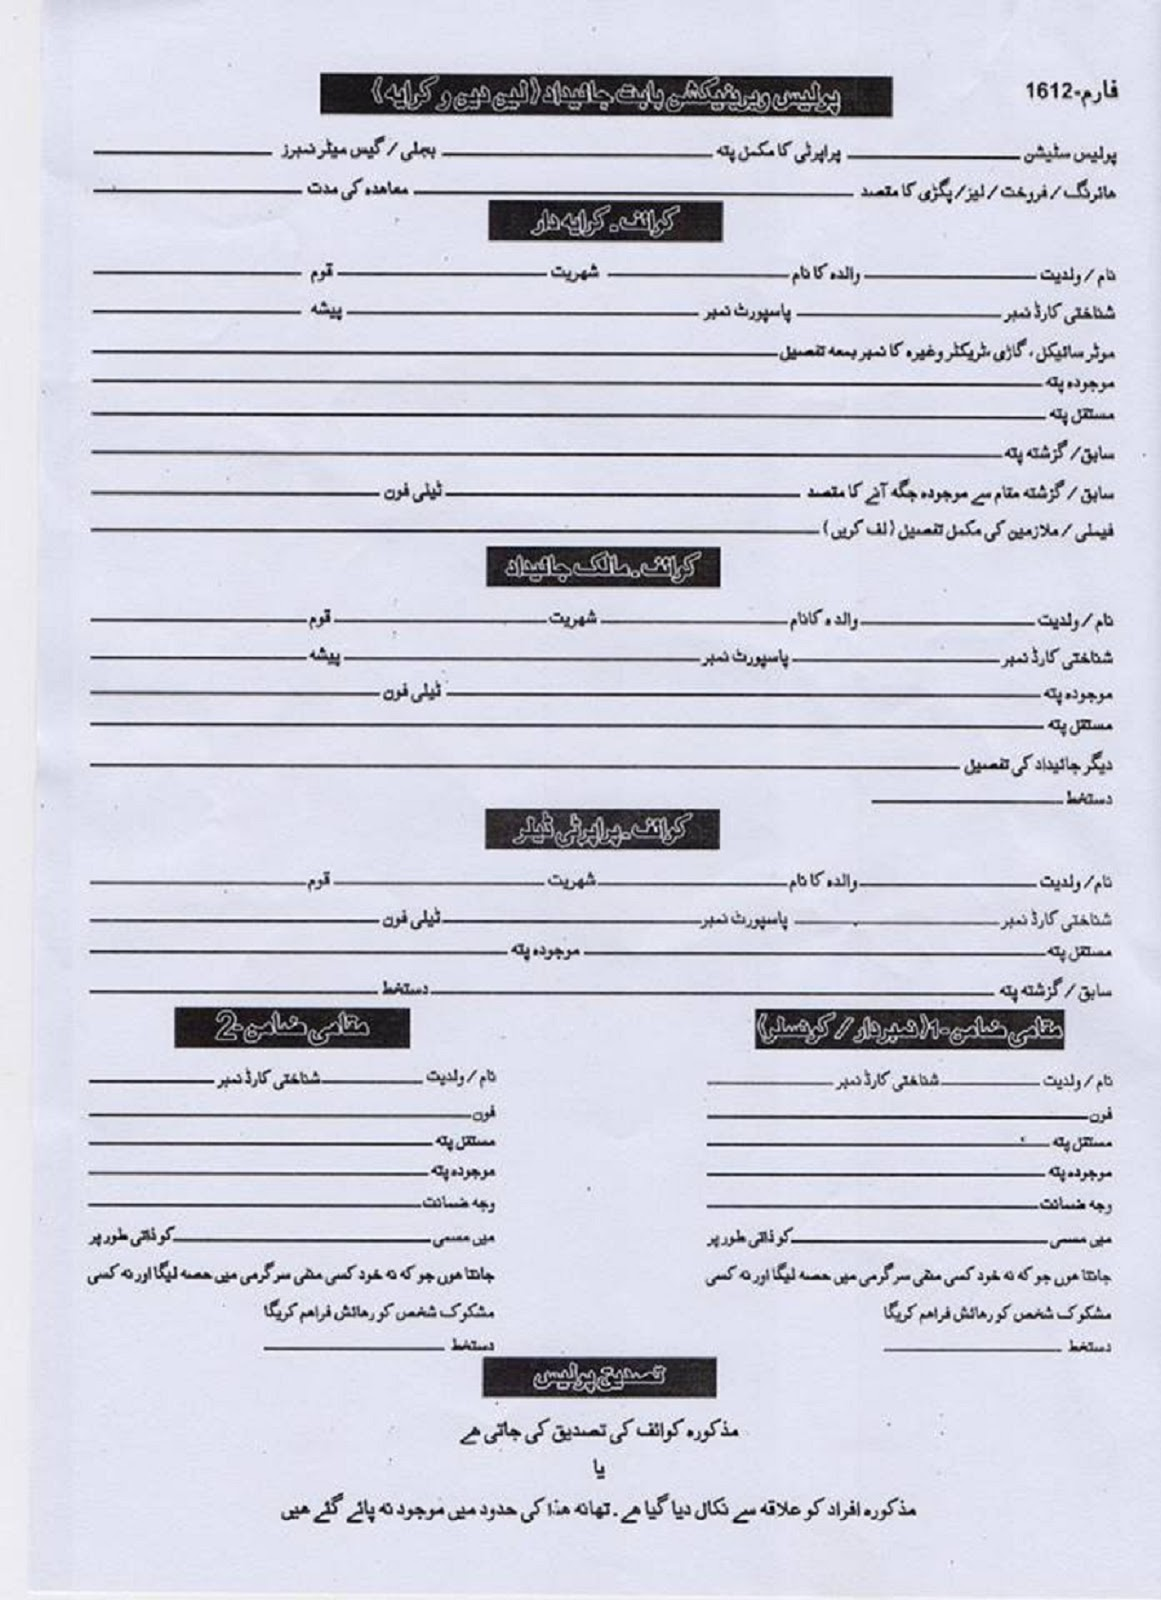 Form 1612 Form 1612 Police Property Buy Sell And Rent